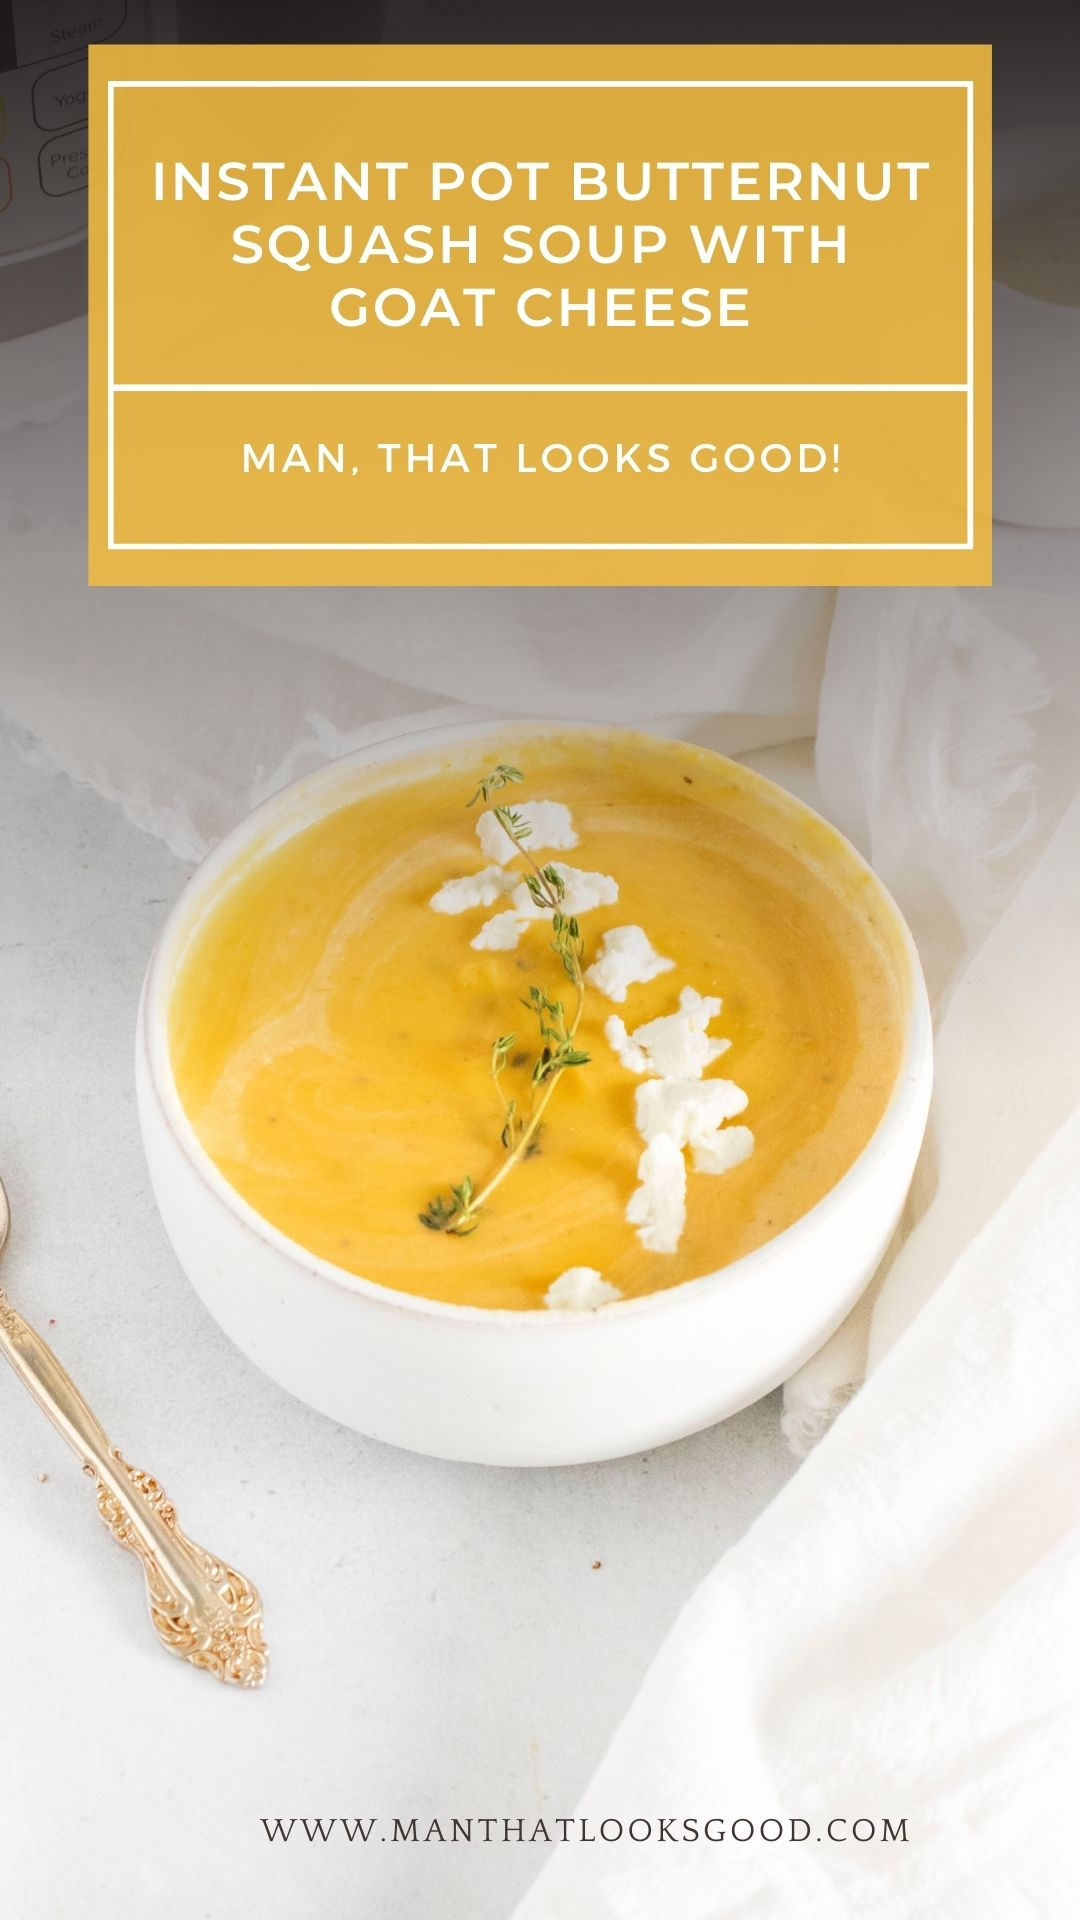 This Instant Pot Butternut Squash Soup with Goat Cheese is perfect for a crisp fall day. Check out this easy to follow recipe